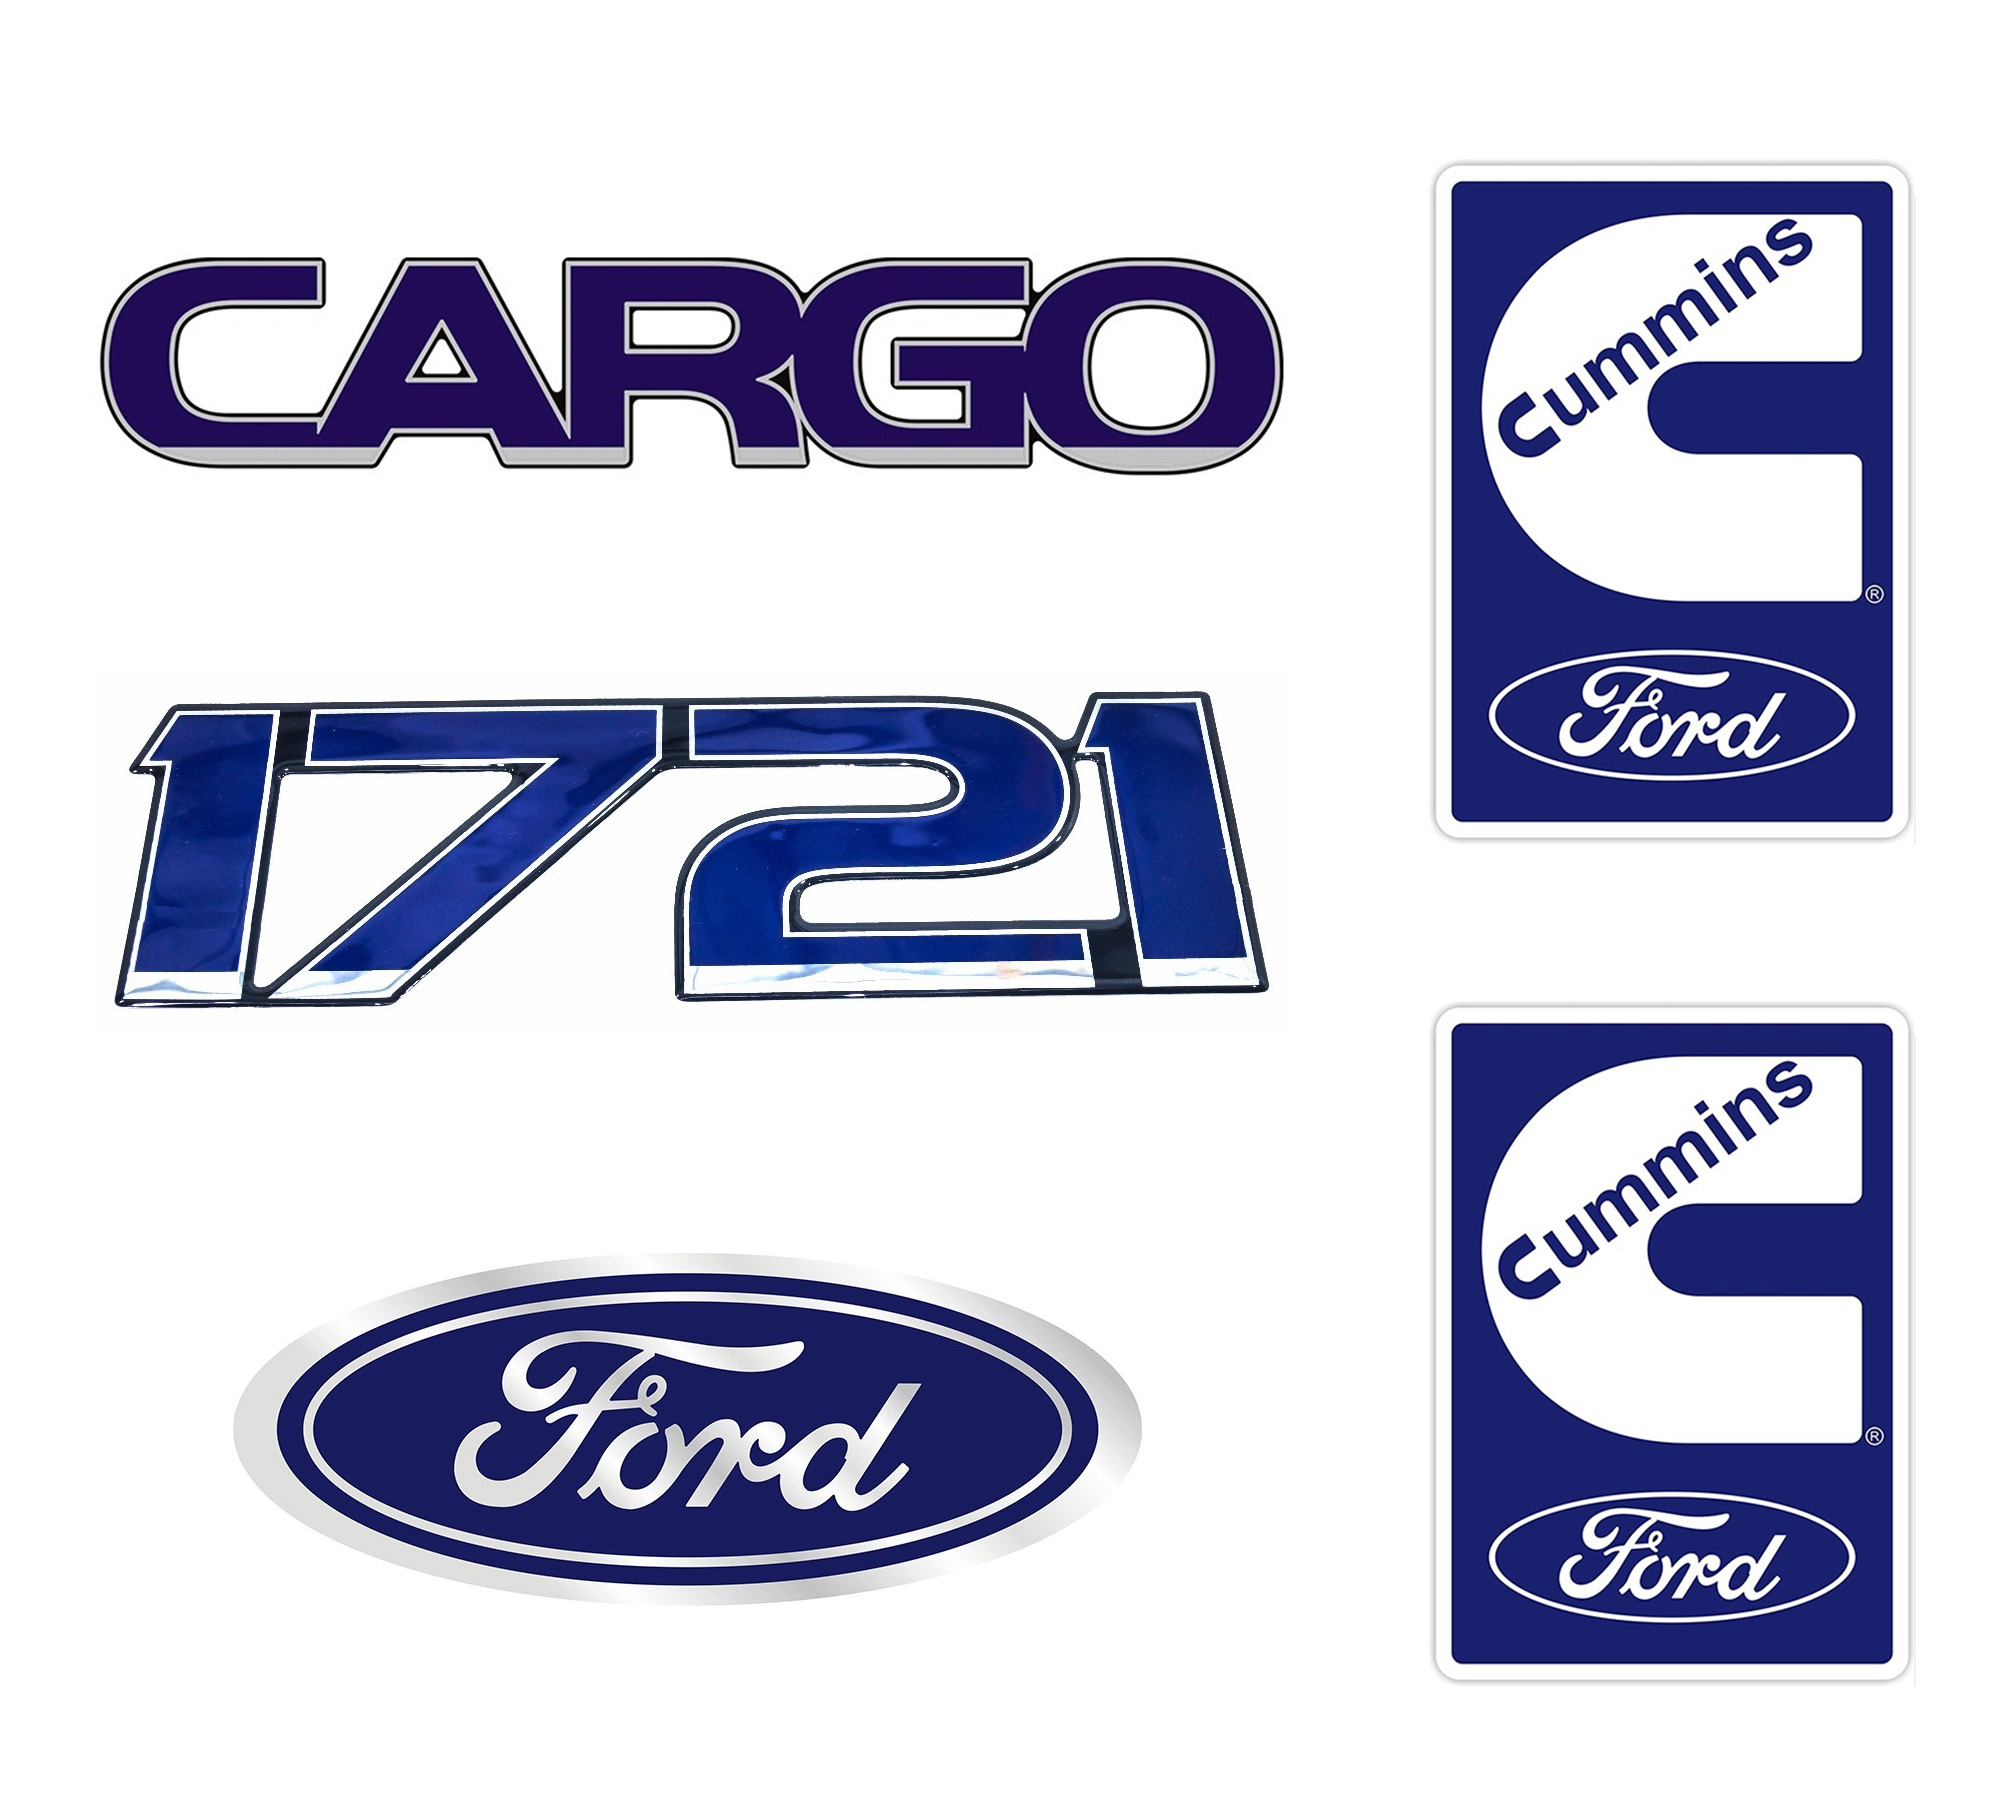 Emblema Ford Cargo 1721 Cummins - Kit